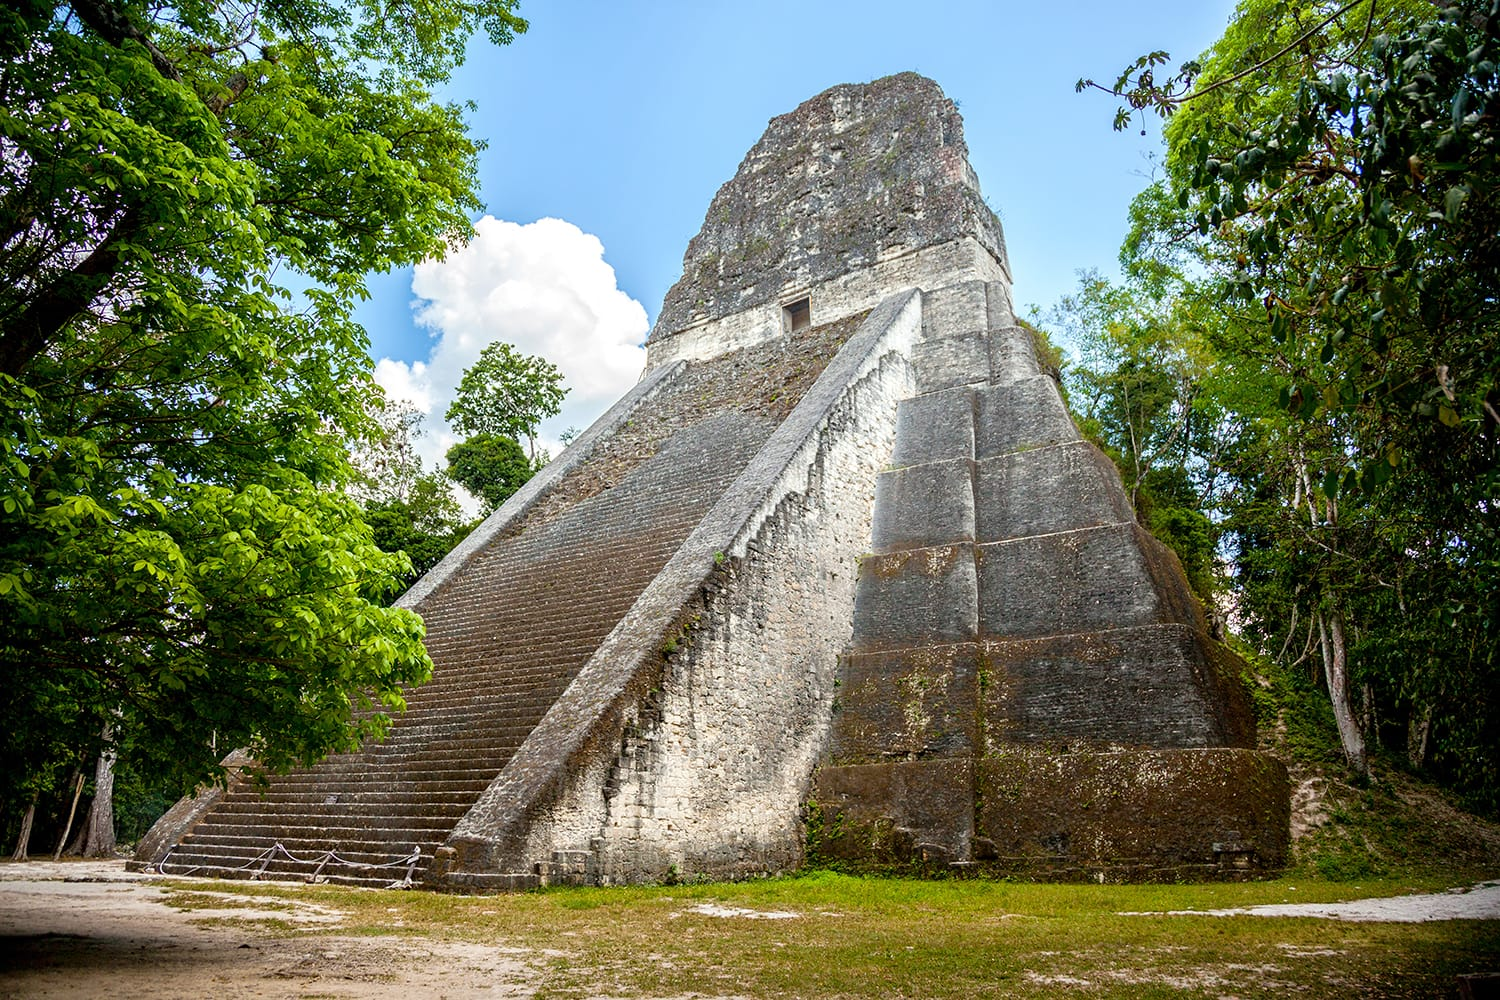 Temple V stands south of the Central Acropolis and is a mortuary pyramid. It has been dated AD 700, in the Late Classic period of the Mayas. is the second tallest structure in Tikal, Guatemala.